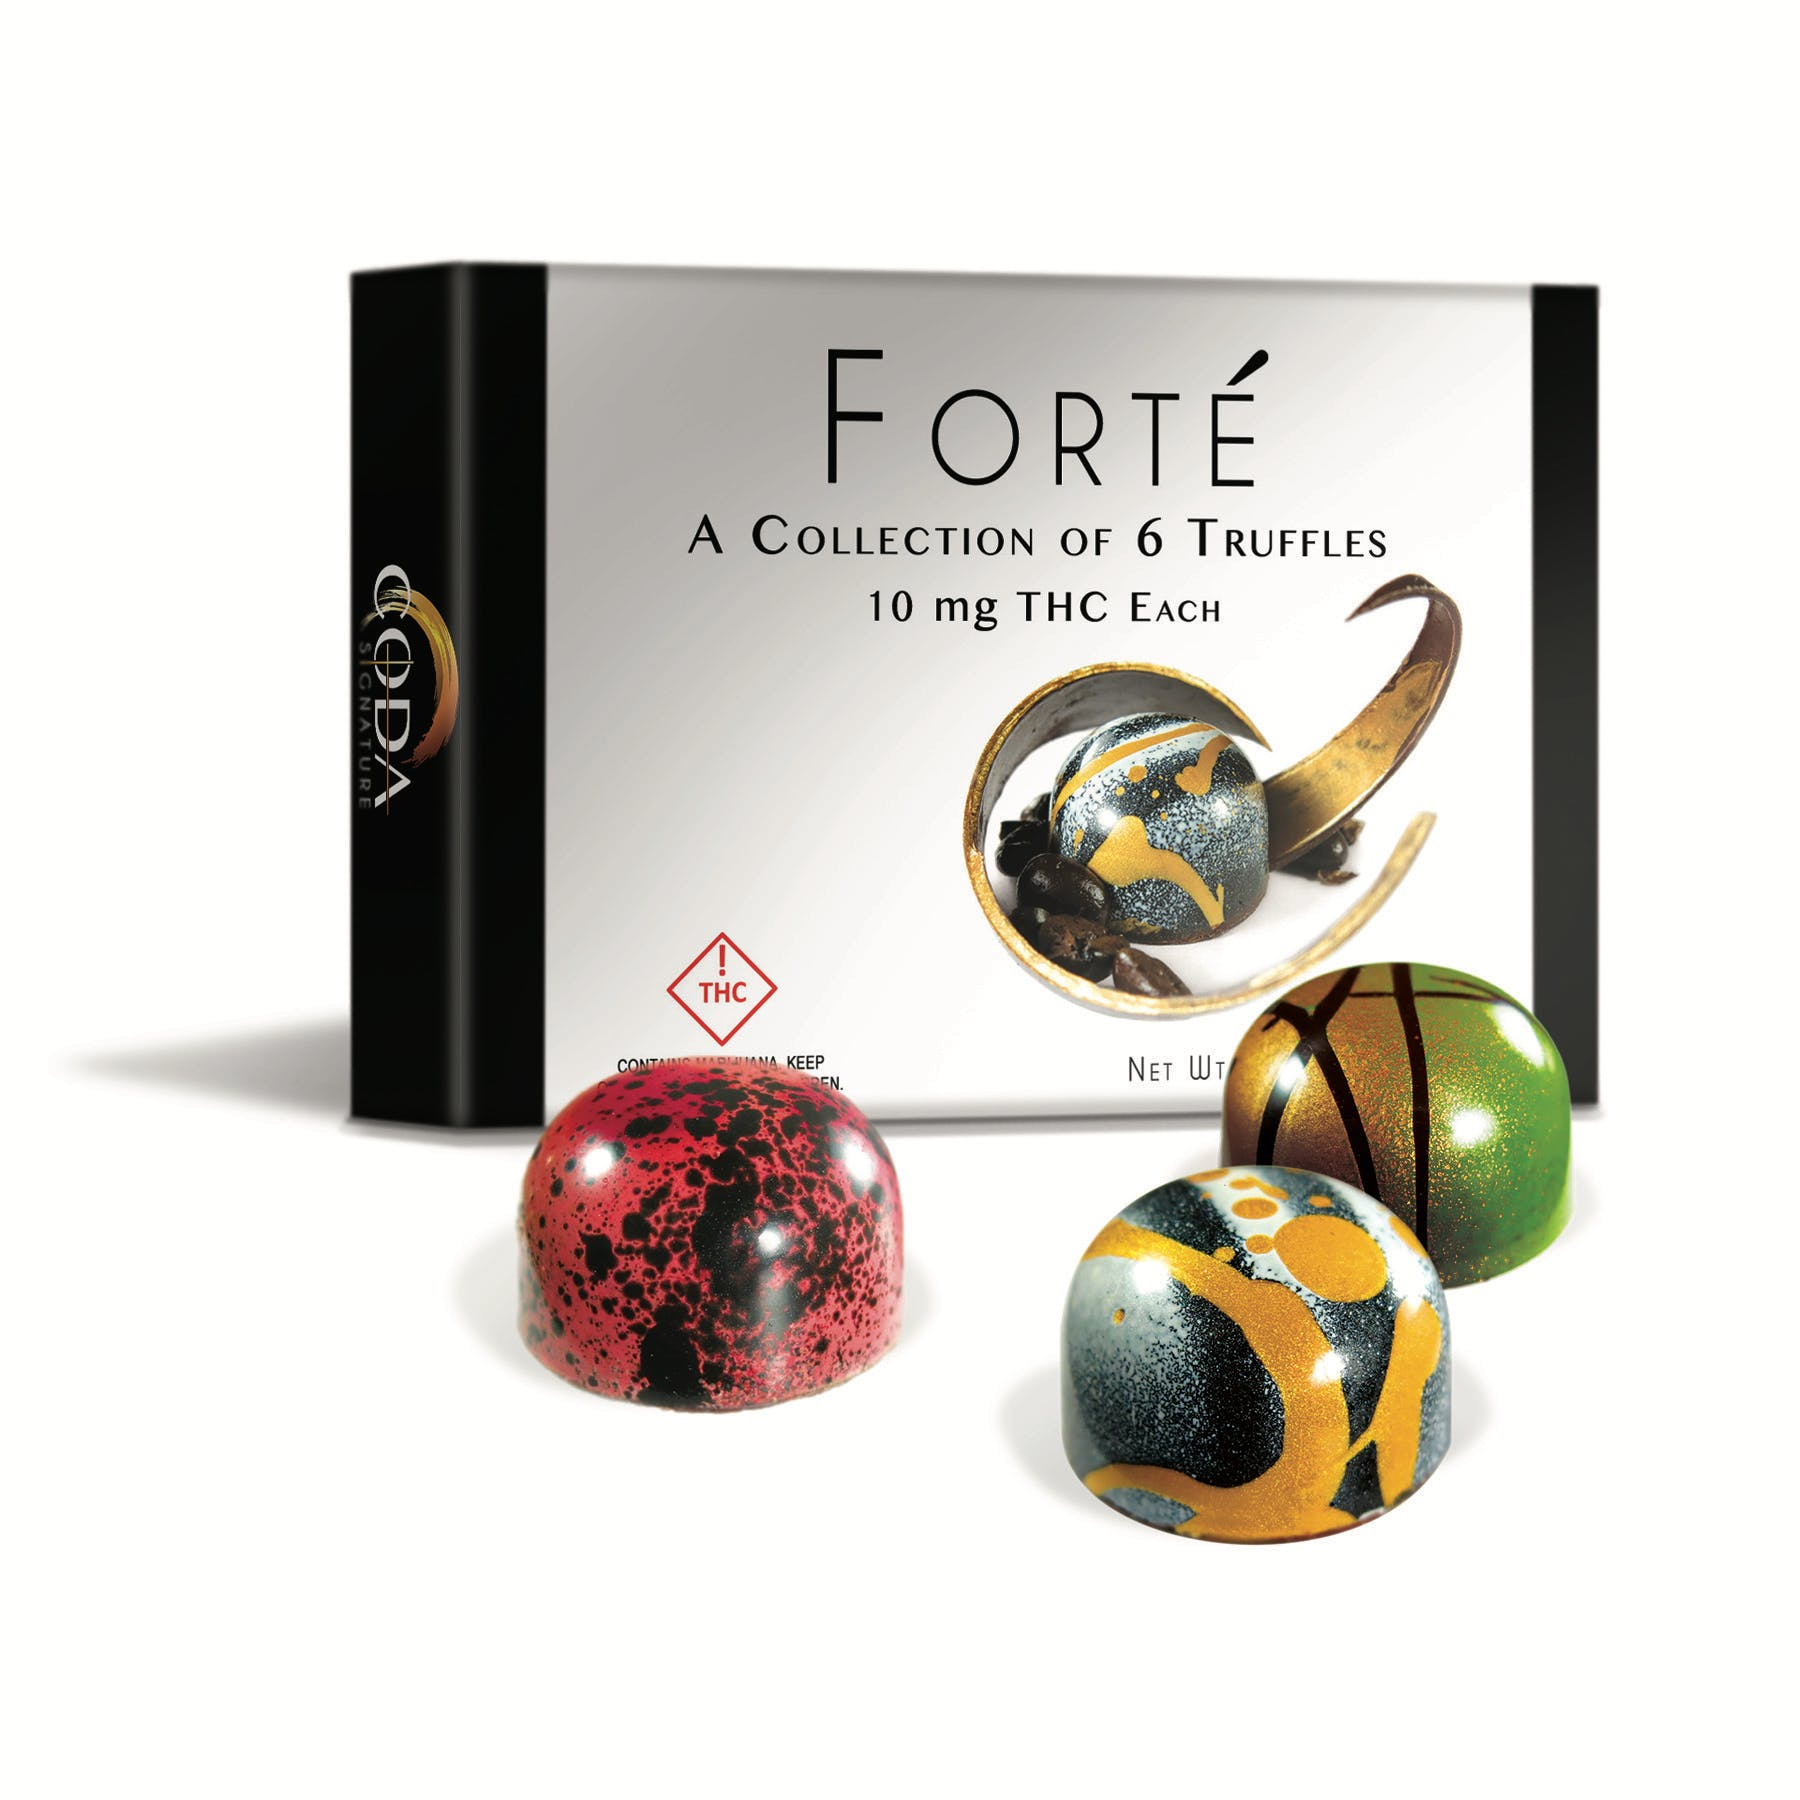 The Forte Collection